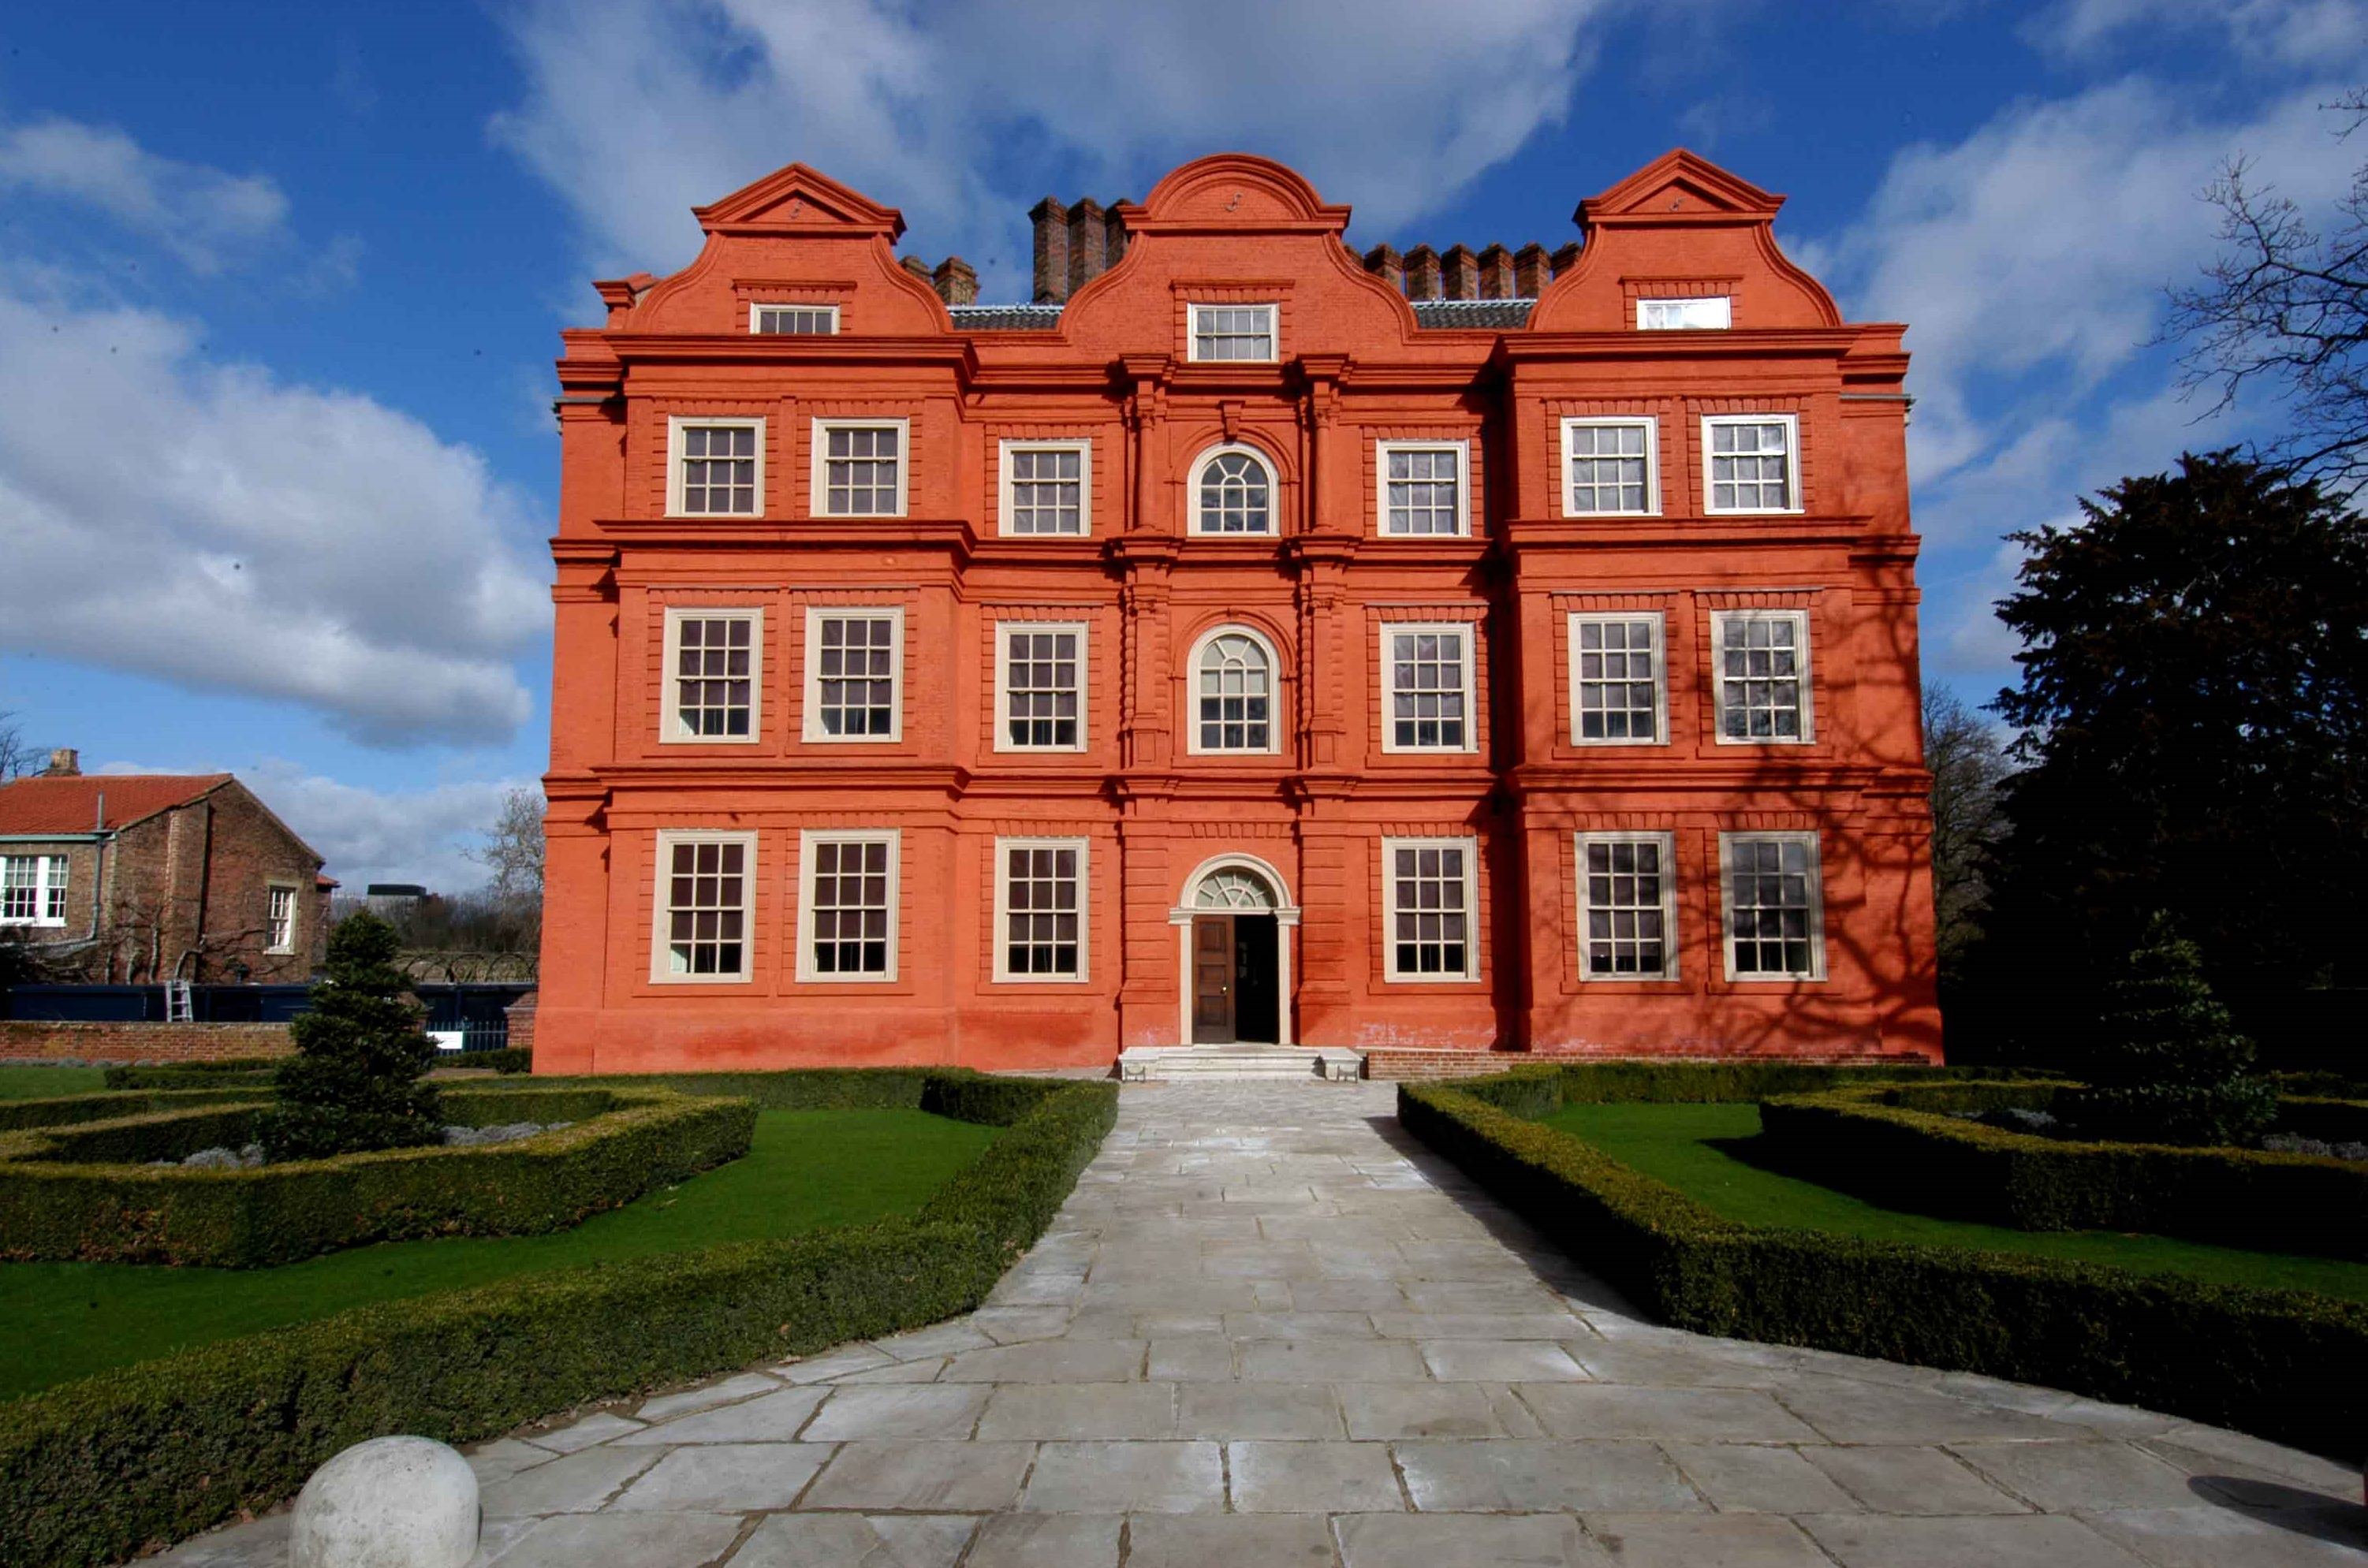 http://www.thecrownchronicles.co.uk/wp-content/uploads/2016/03/Kew-Palace-exterior.jpg